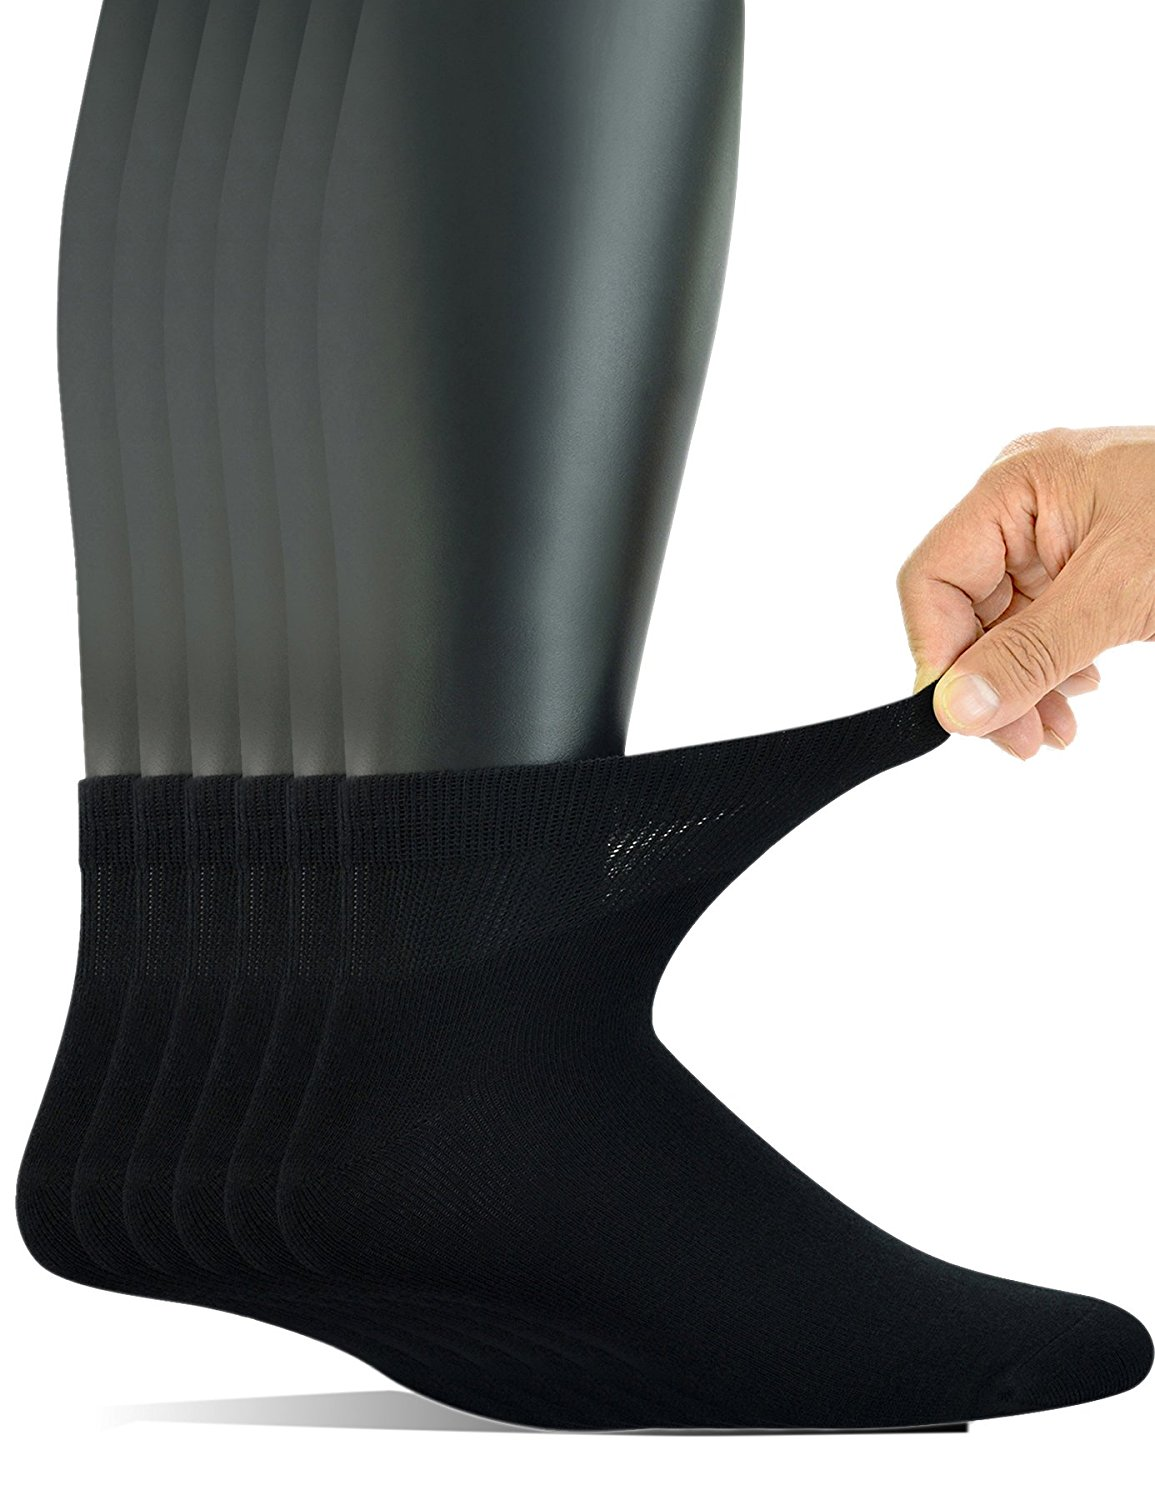 ab6119bfa666c Get Quotations · Yomandamor Men's 6 Pairs Combed Cotton Diabetic Ankle Socks  with Seamless Toe and Non-Binding